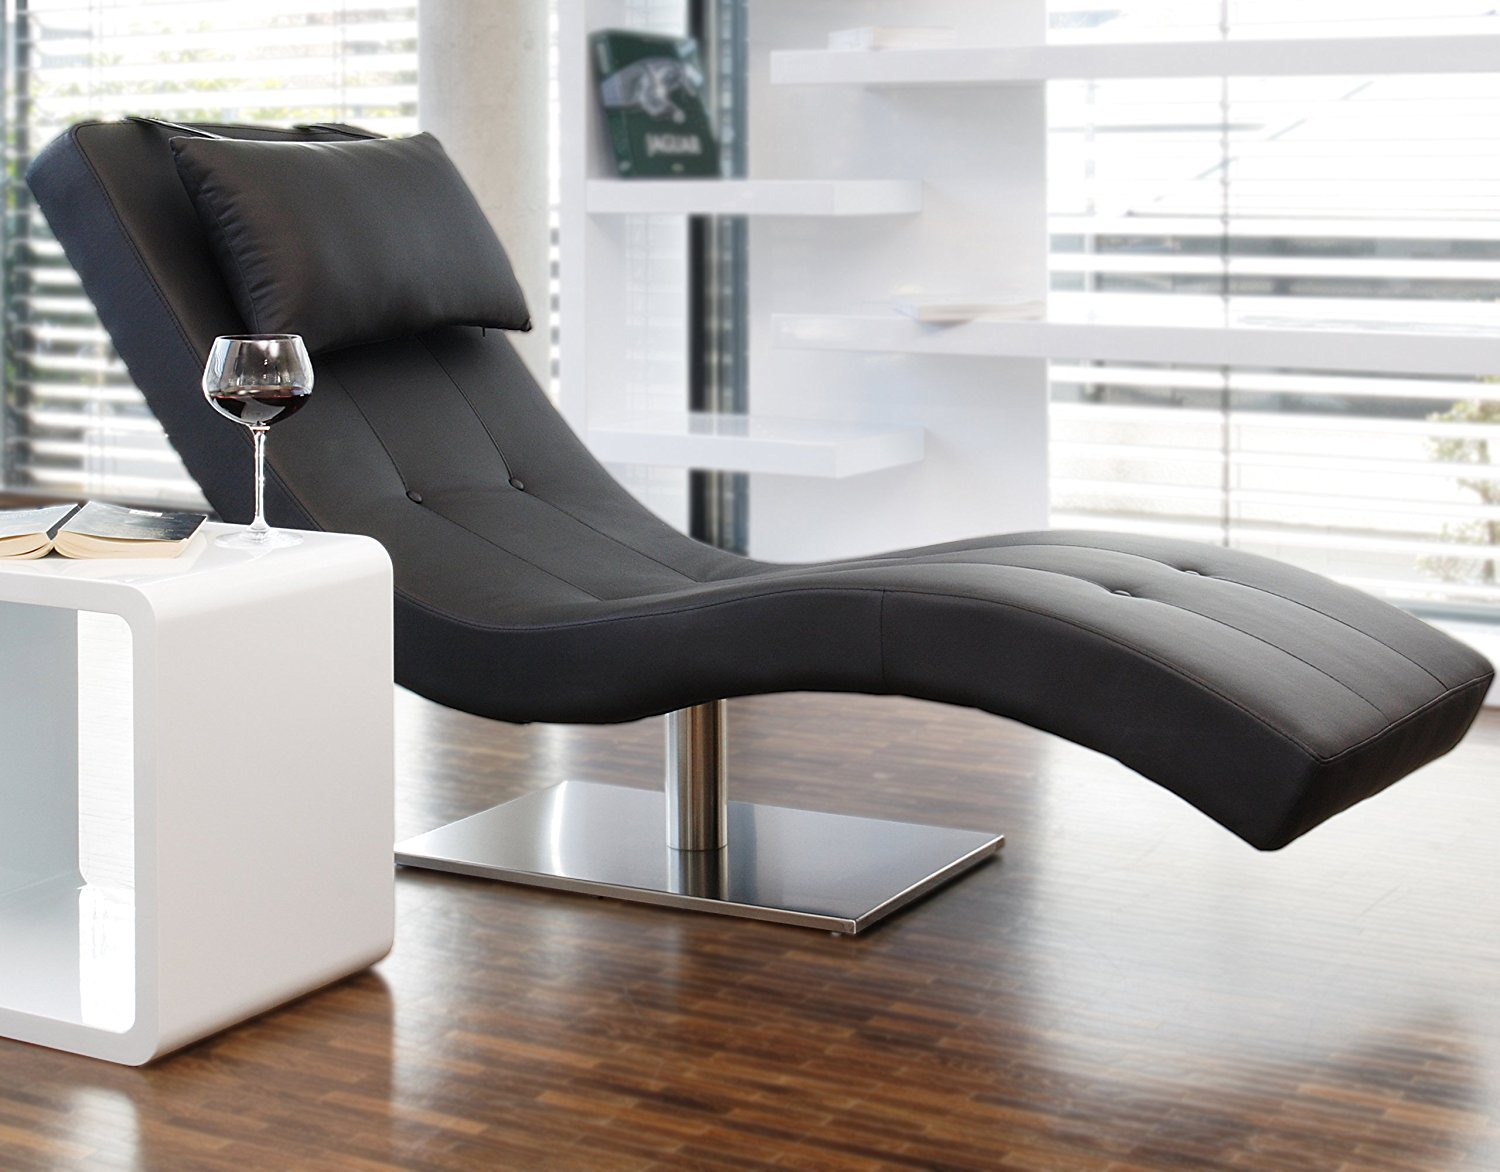 Liege Mit Massagefunktion Designer Liege Chaise Longue Siara Fairer Check Massagesessel